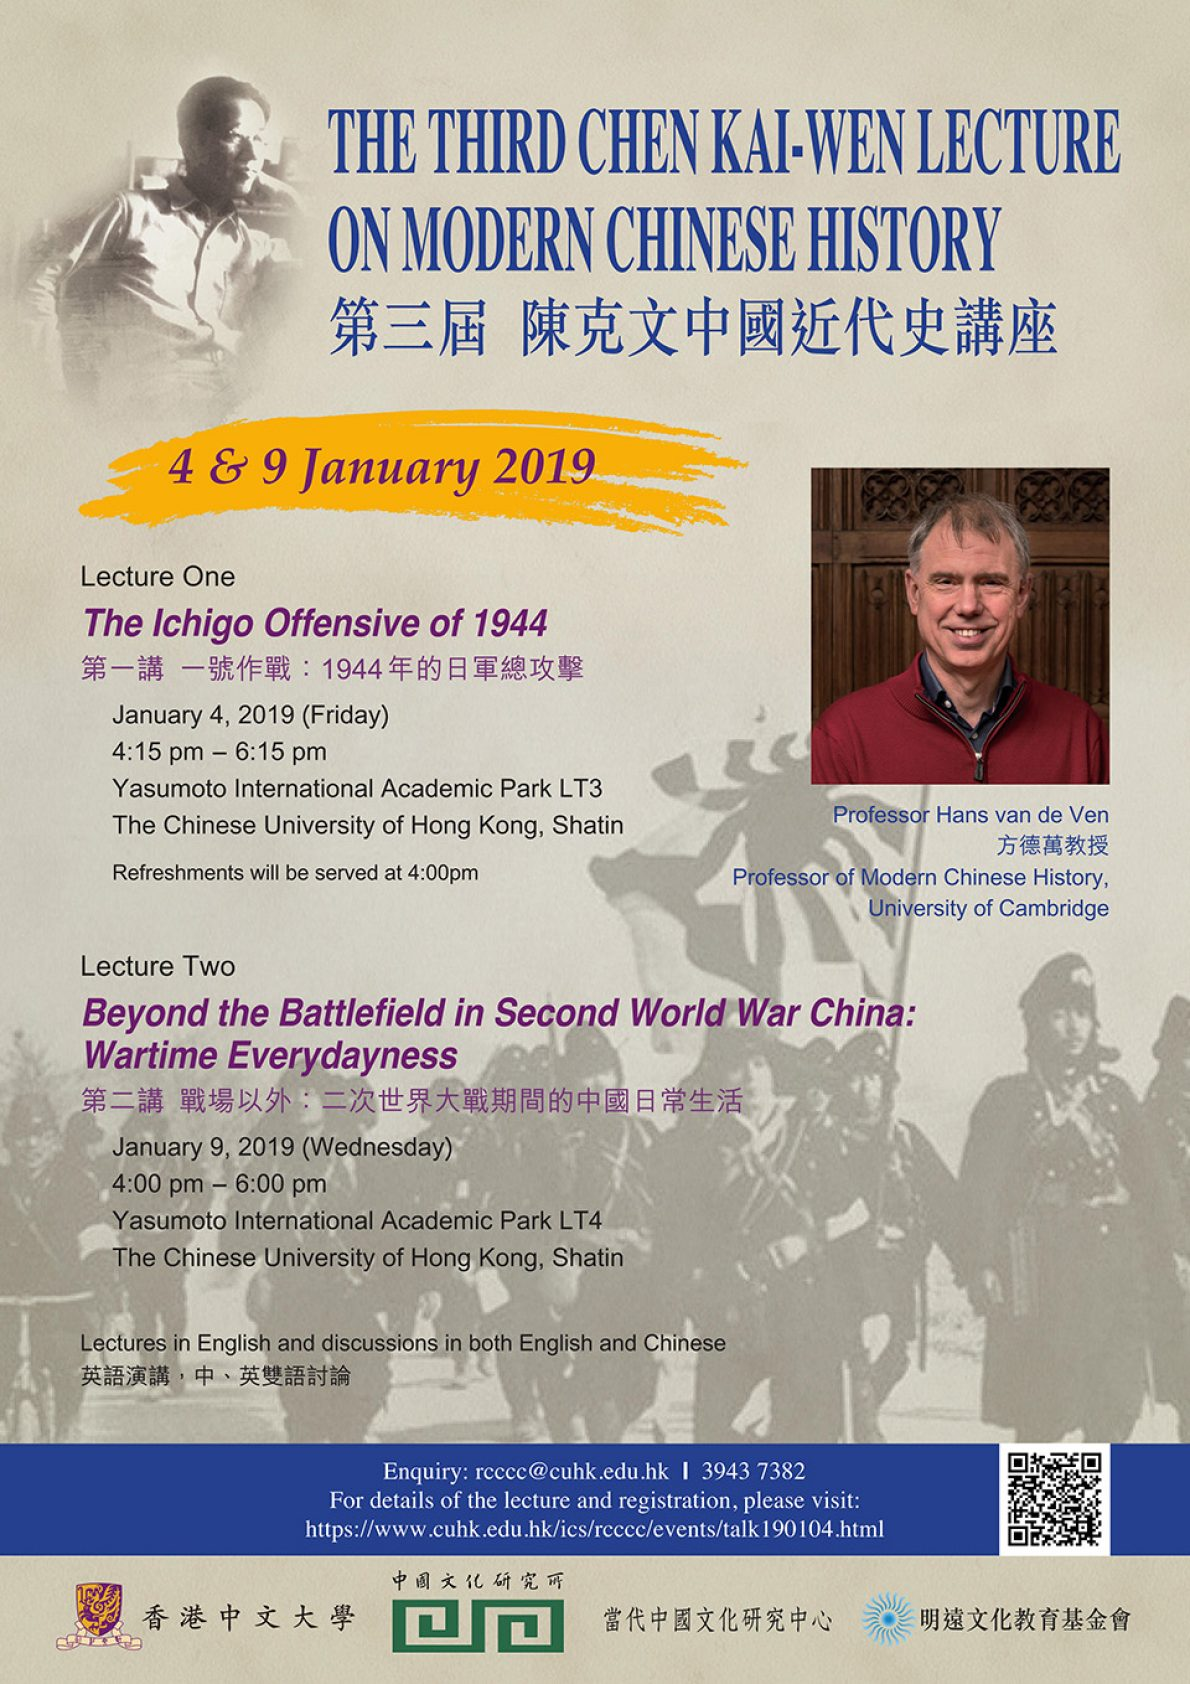 The Third Chen Kai-wen Lecture on Modern Chinese History (January 4 & 9, 2019)